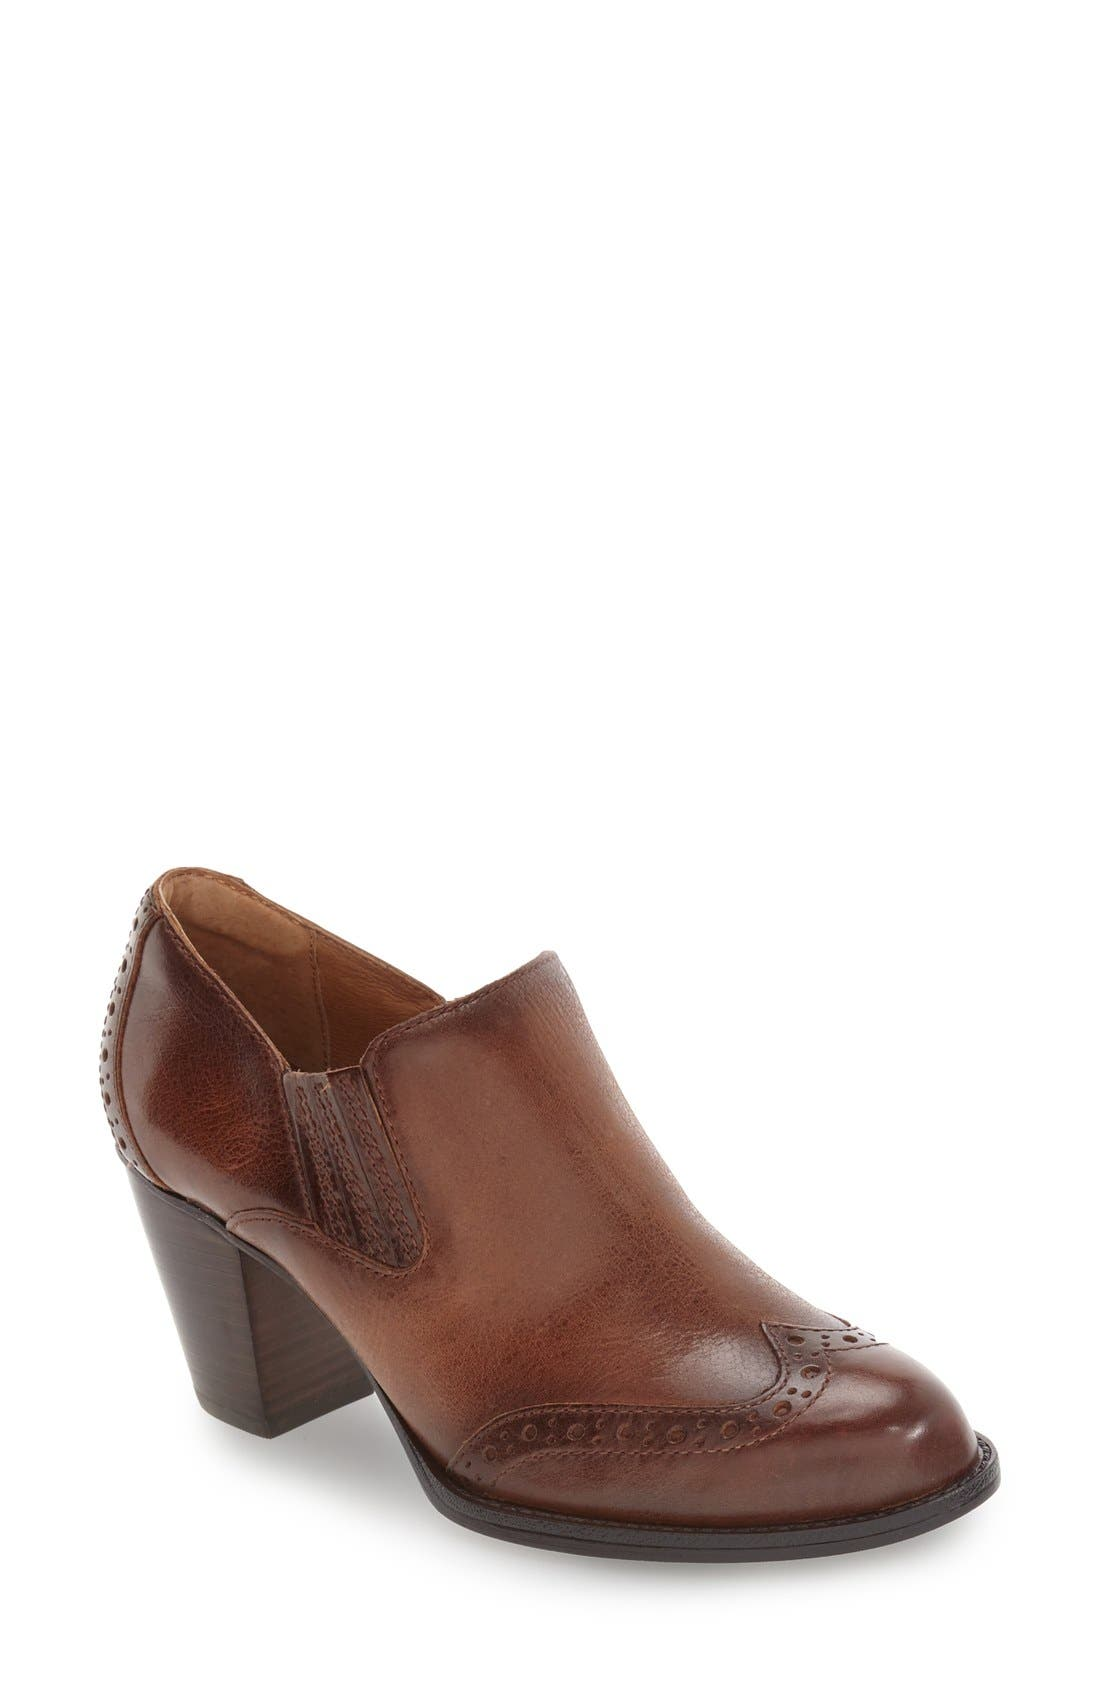 Main Image - Söfft 'Weston' Block Heel Bootie (Women)